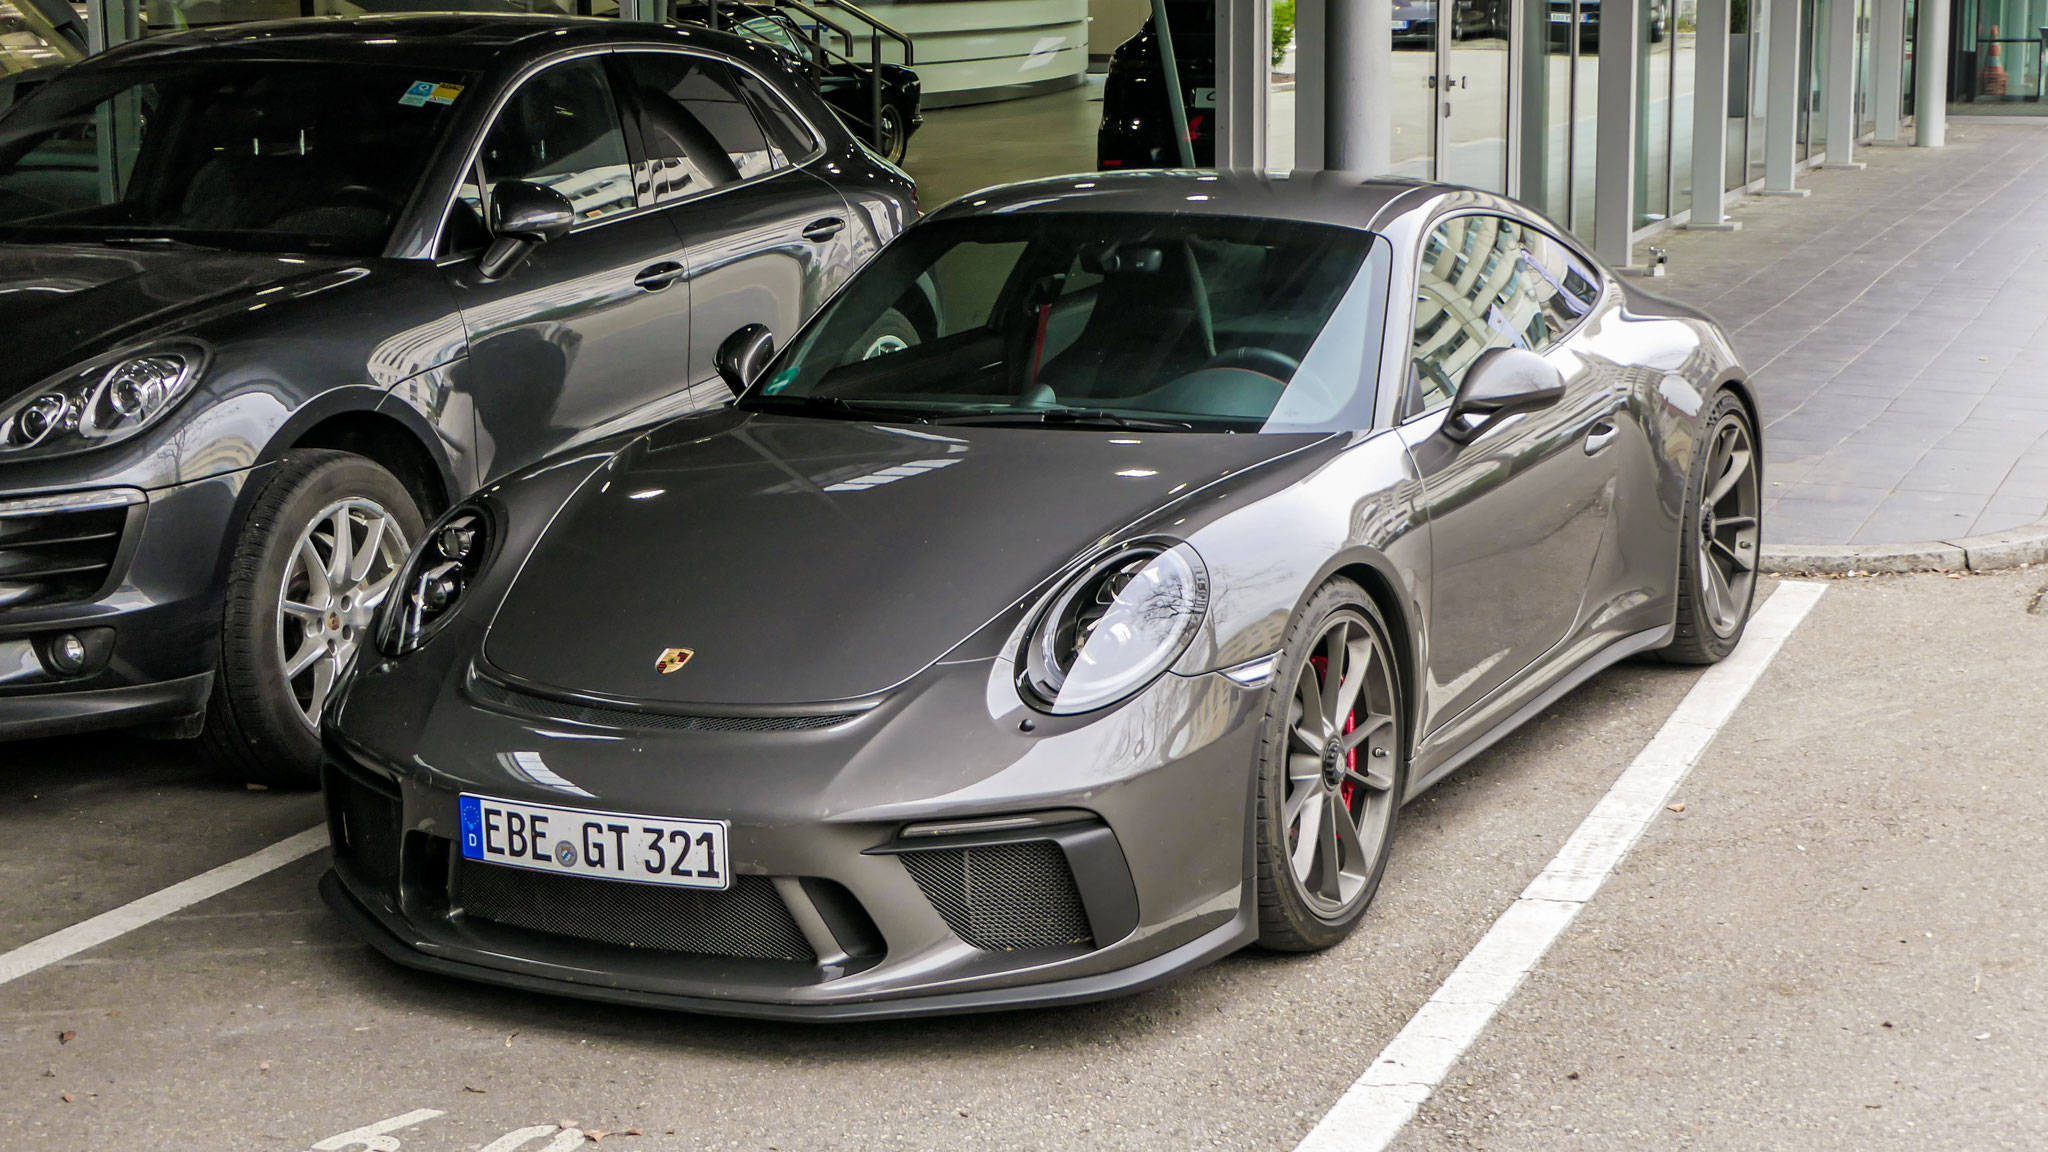 Porsche 991 GT3 Touring Package - EBE-GT-321